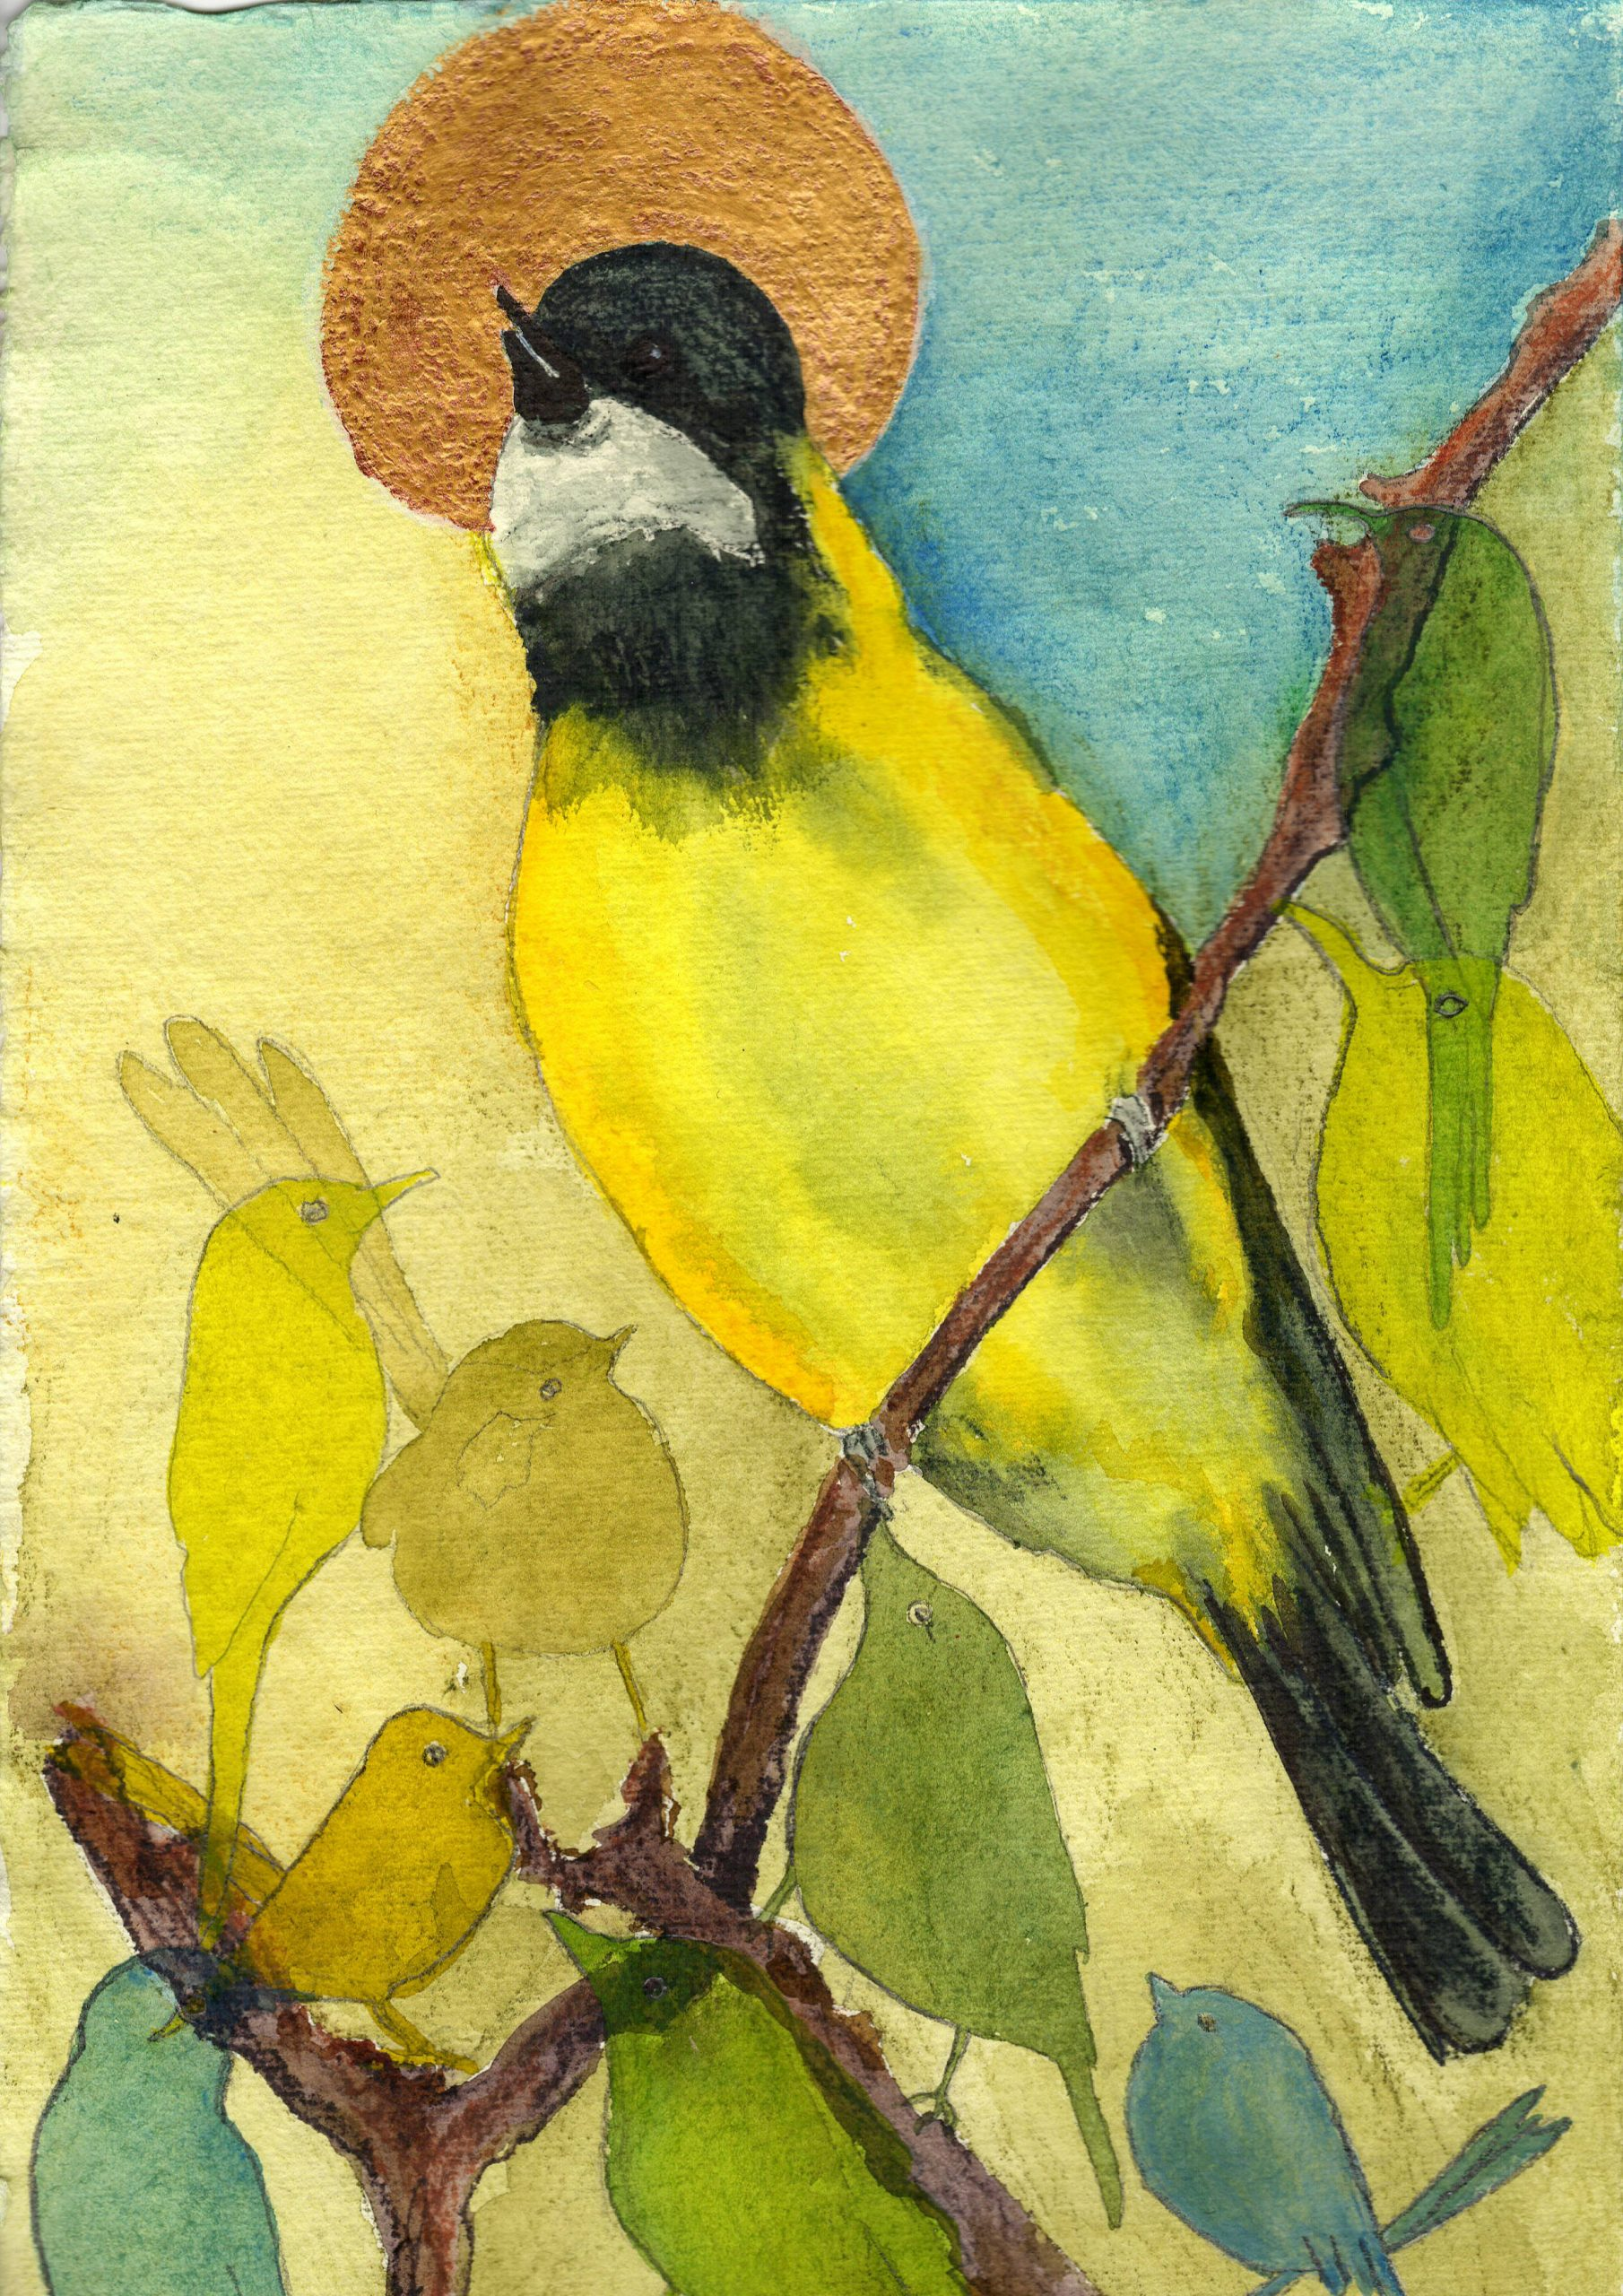 (64) Mary-Anne Stuart - Be Attentive to the Birds Image